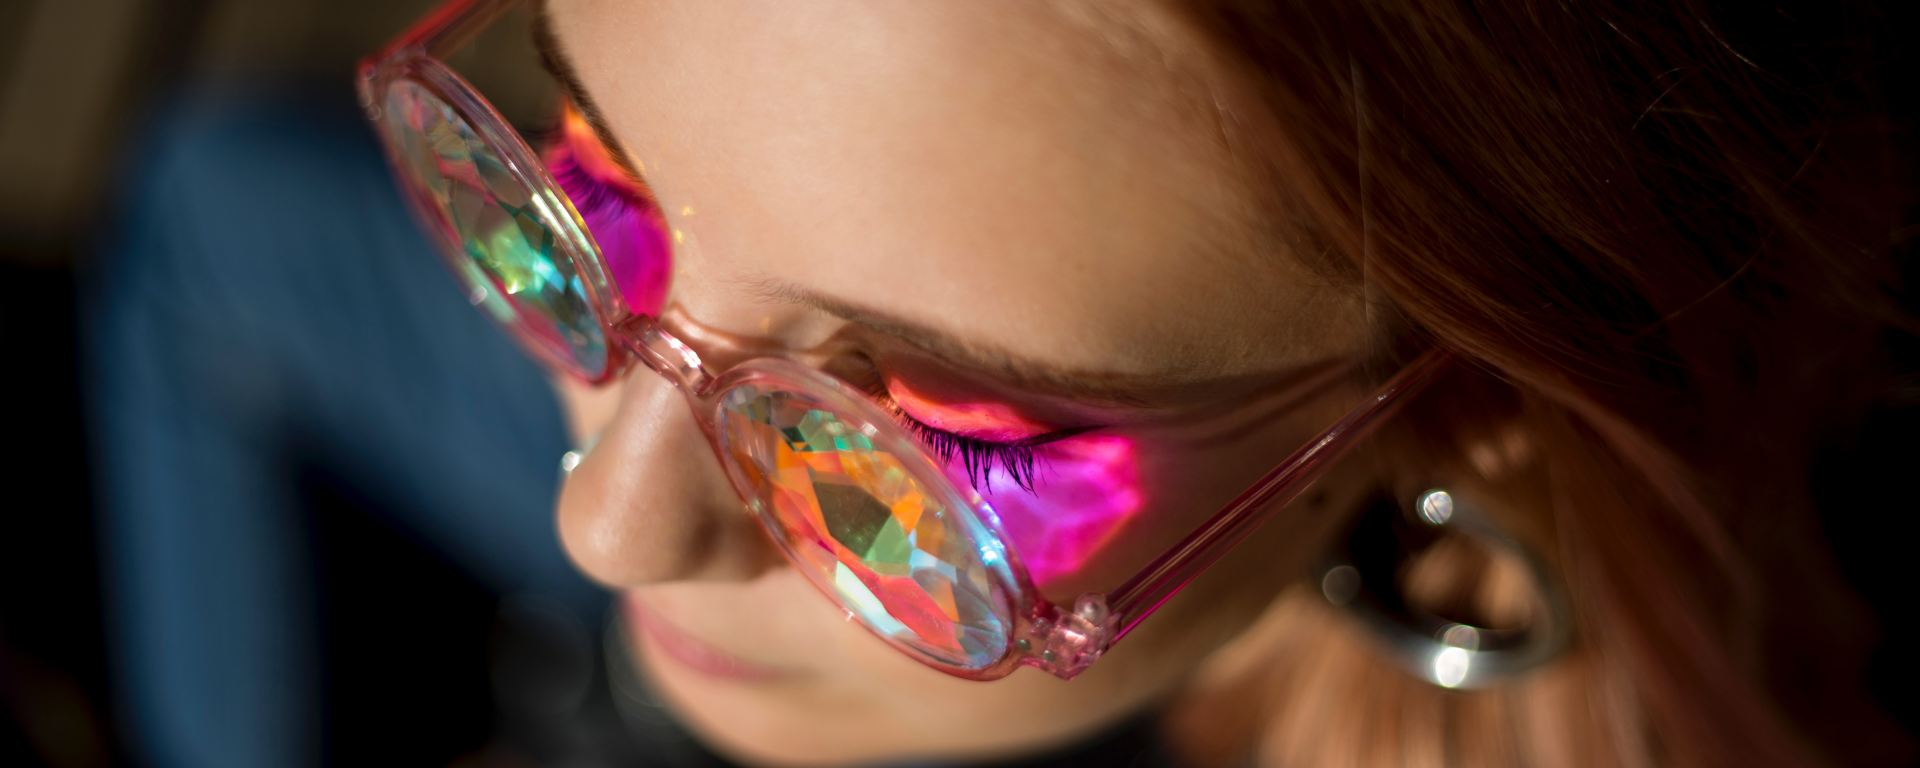 woman wearing prism glasses casting pink tint on face